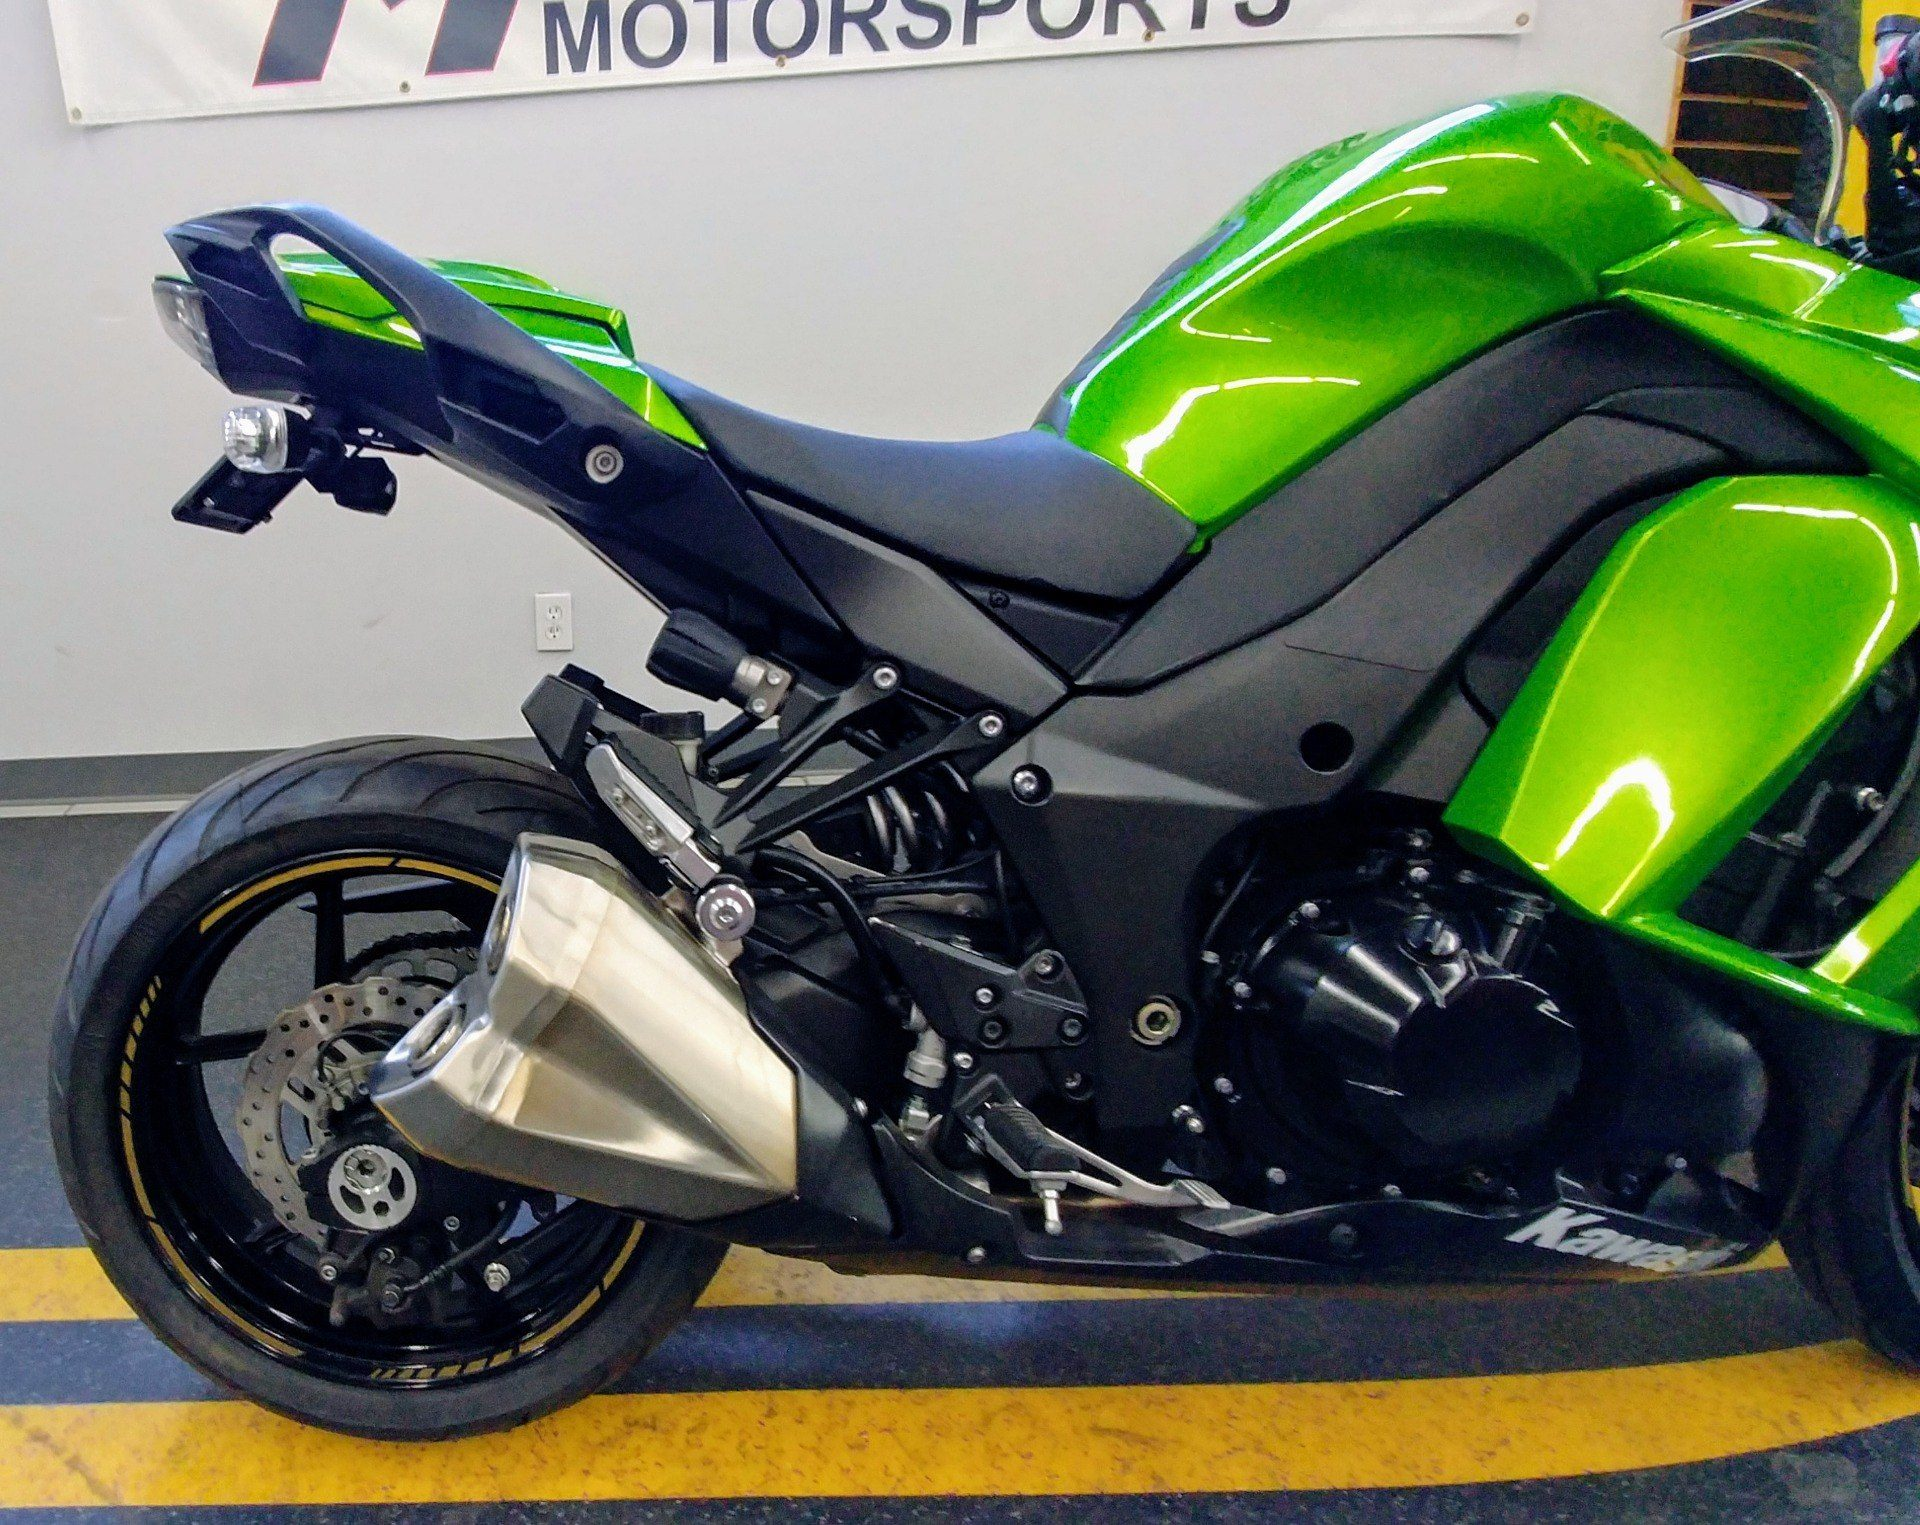 2014 Kawasaki Ninja® 1000 ABS in Ontario, California - Photo 6